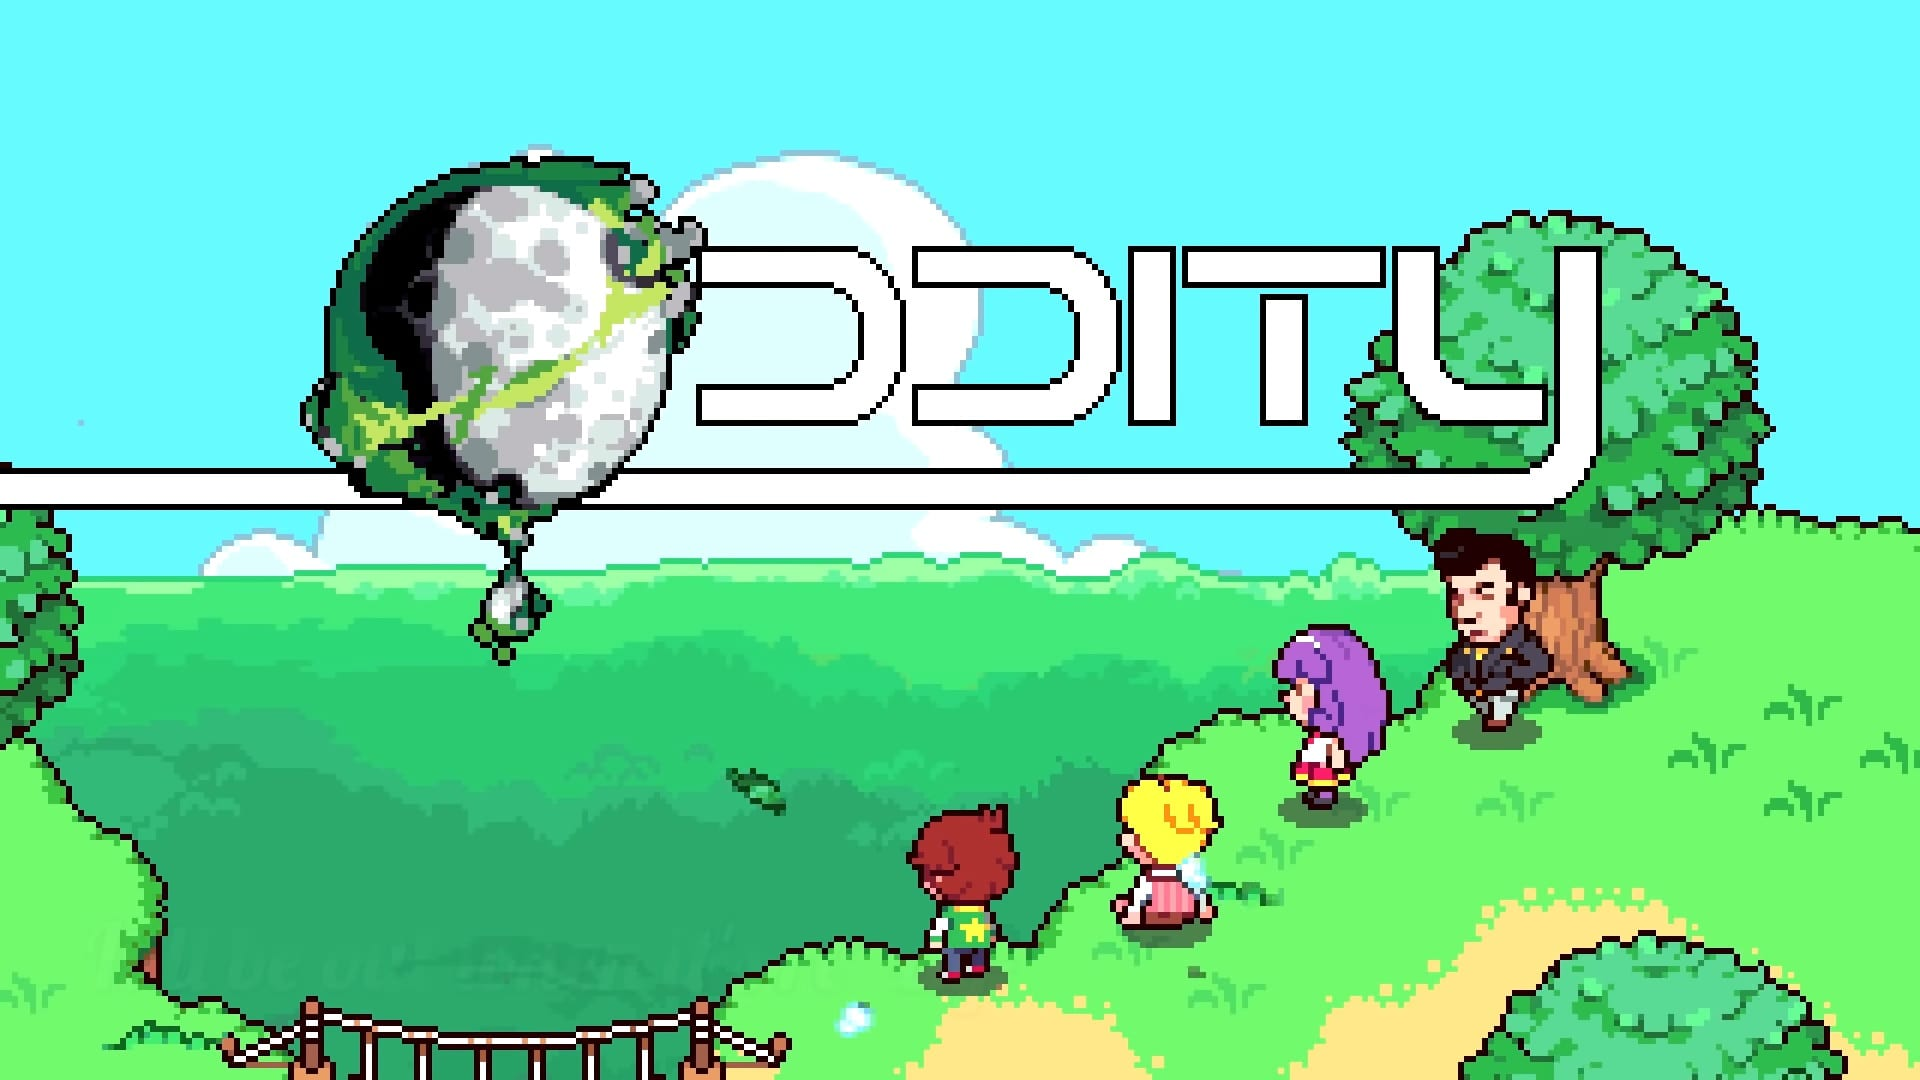 oddity, mother 4 fan game,